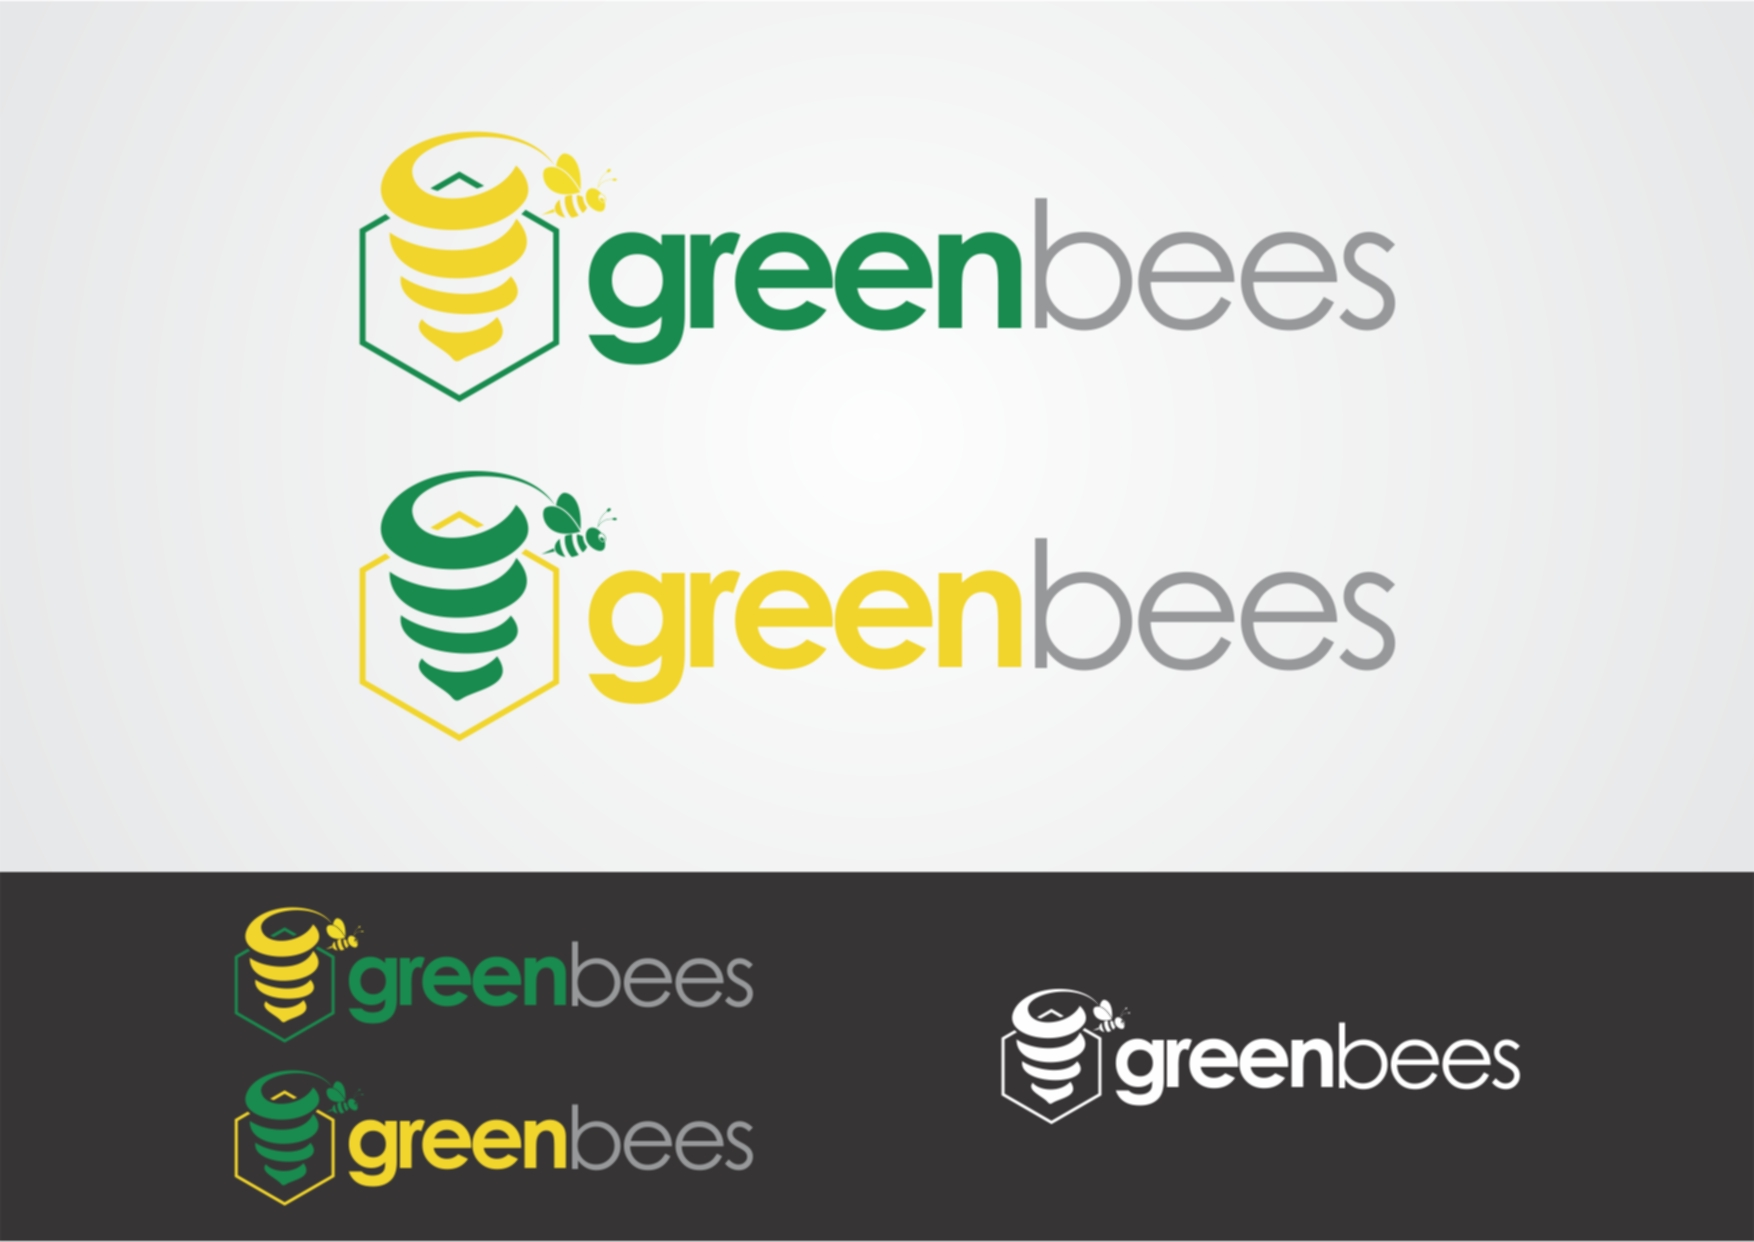 Logo Design by Private User - Entry No. 59 in the Logo Design Contest Greenbees Logo Design.